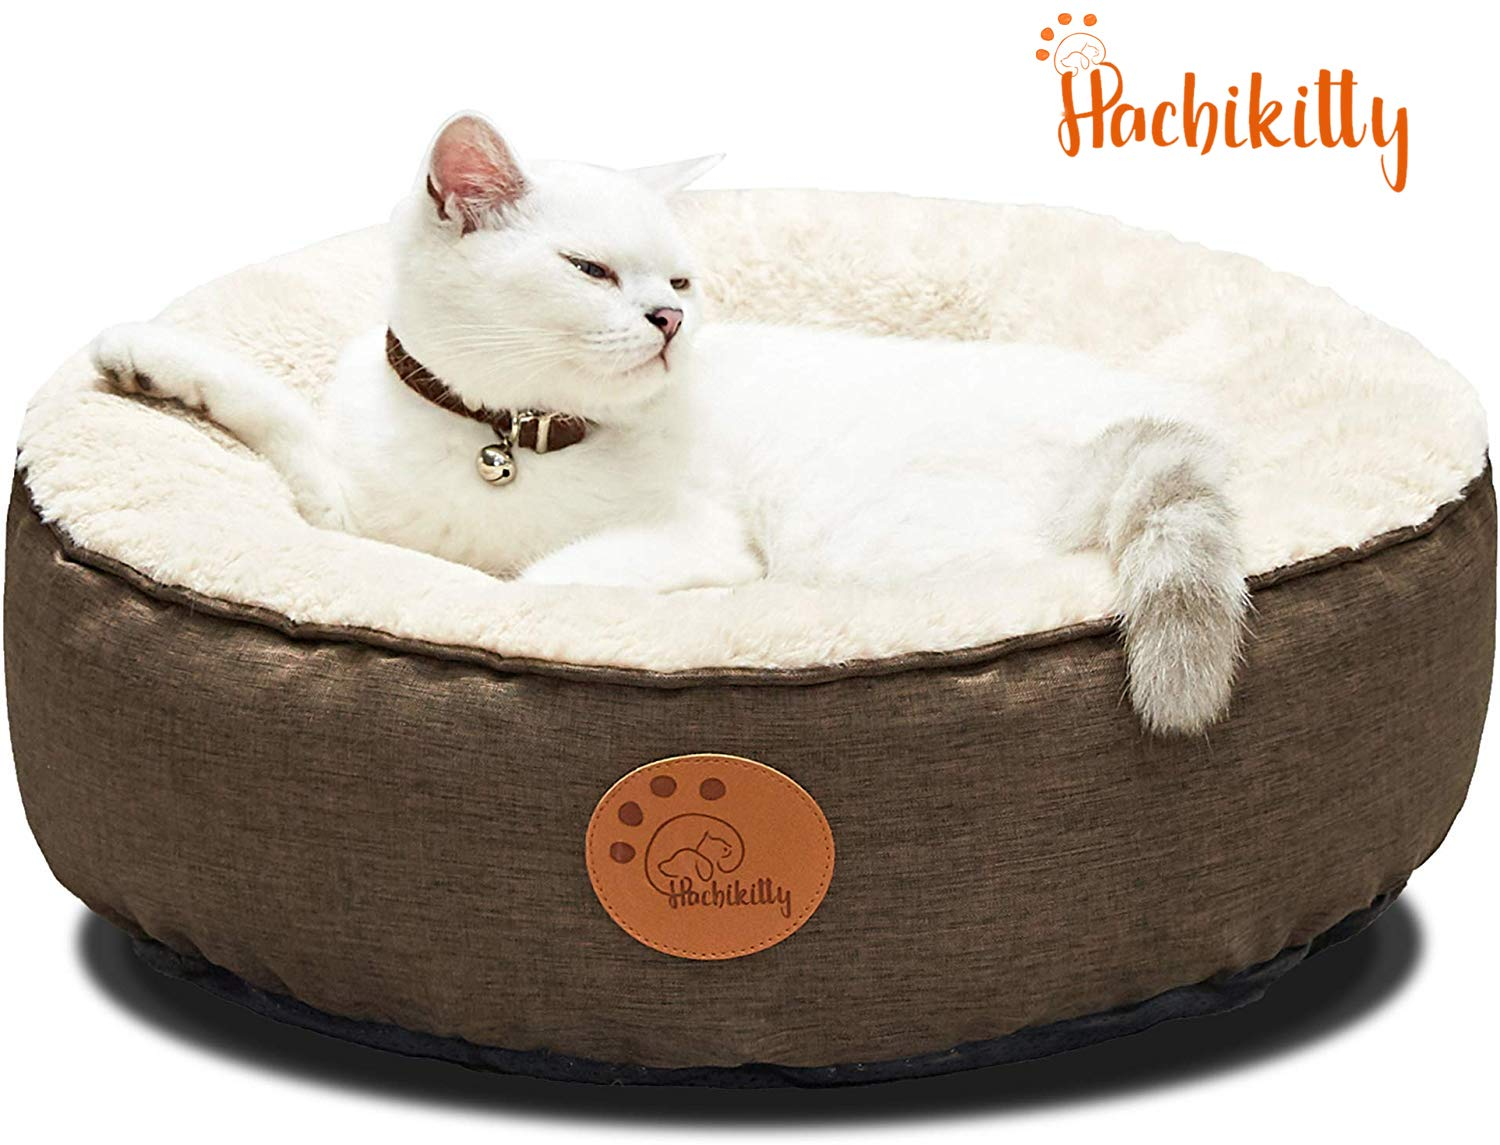 Terrific Hachikitty Washable Cat Warming Bed Round Cat Beds Indoor Cats Medium Big Pet Bed Machine Washable Customarchery Wood Chair Design Ideas Customarcherynet